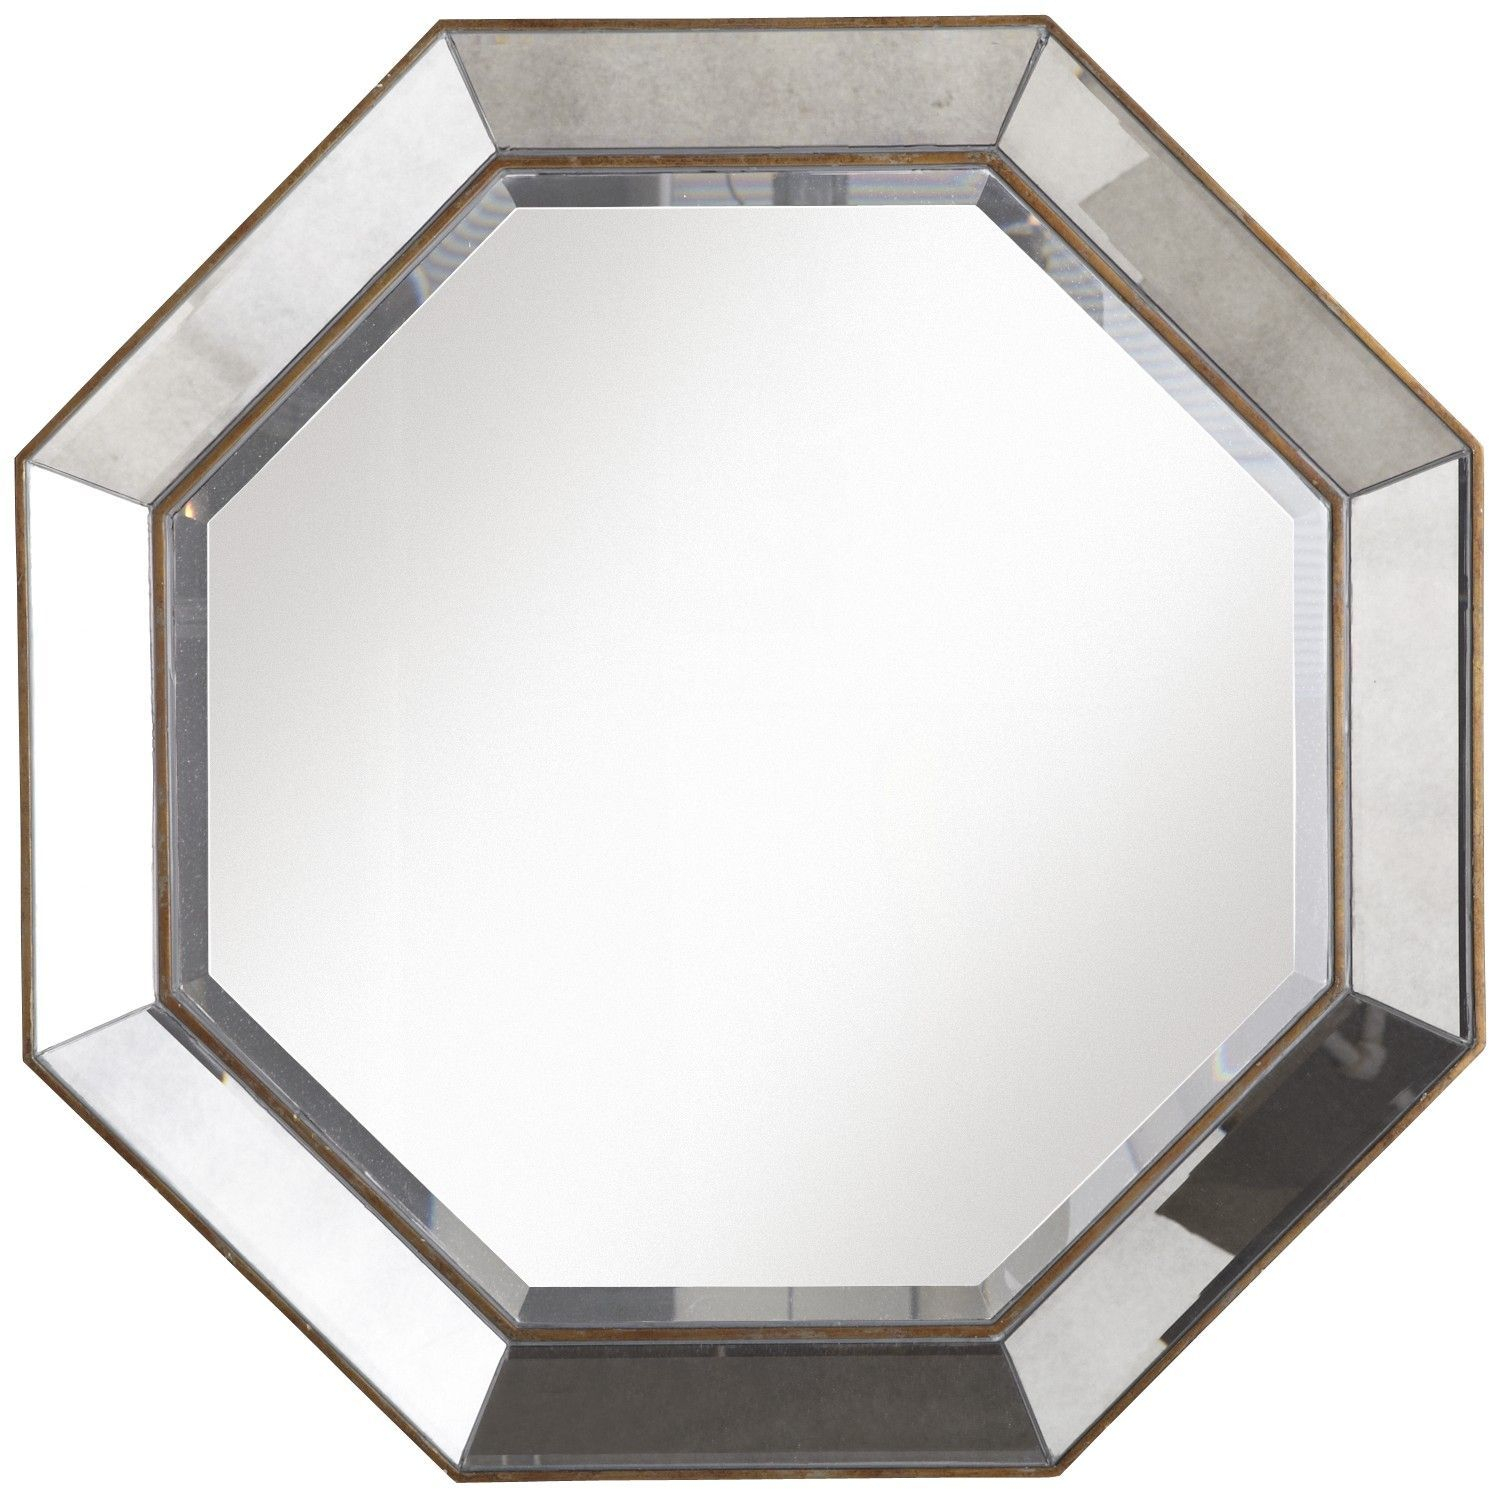 Octagon Mirror Could Be Used As A Coffee Table (or Two Pertaining To Trigg Accent Mirrors (View 14 of 30)